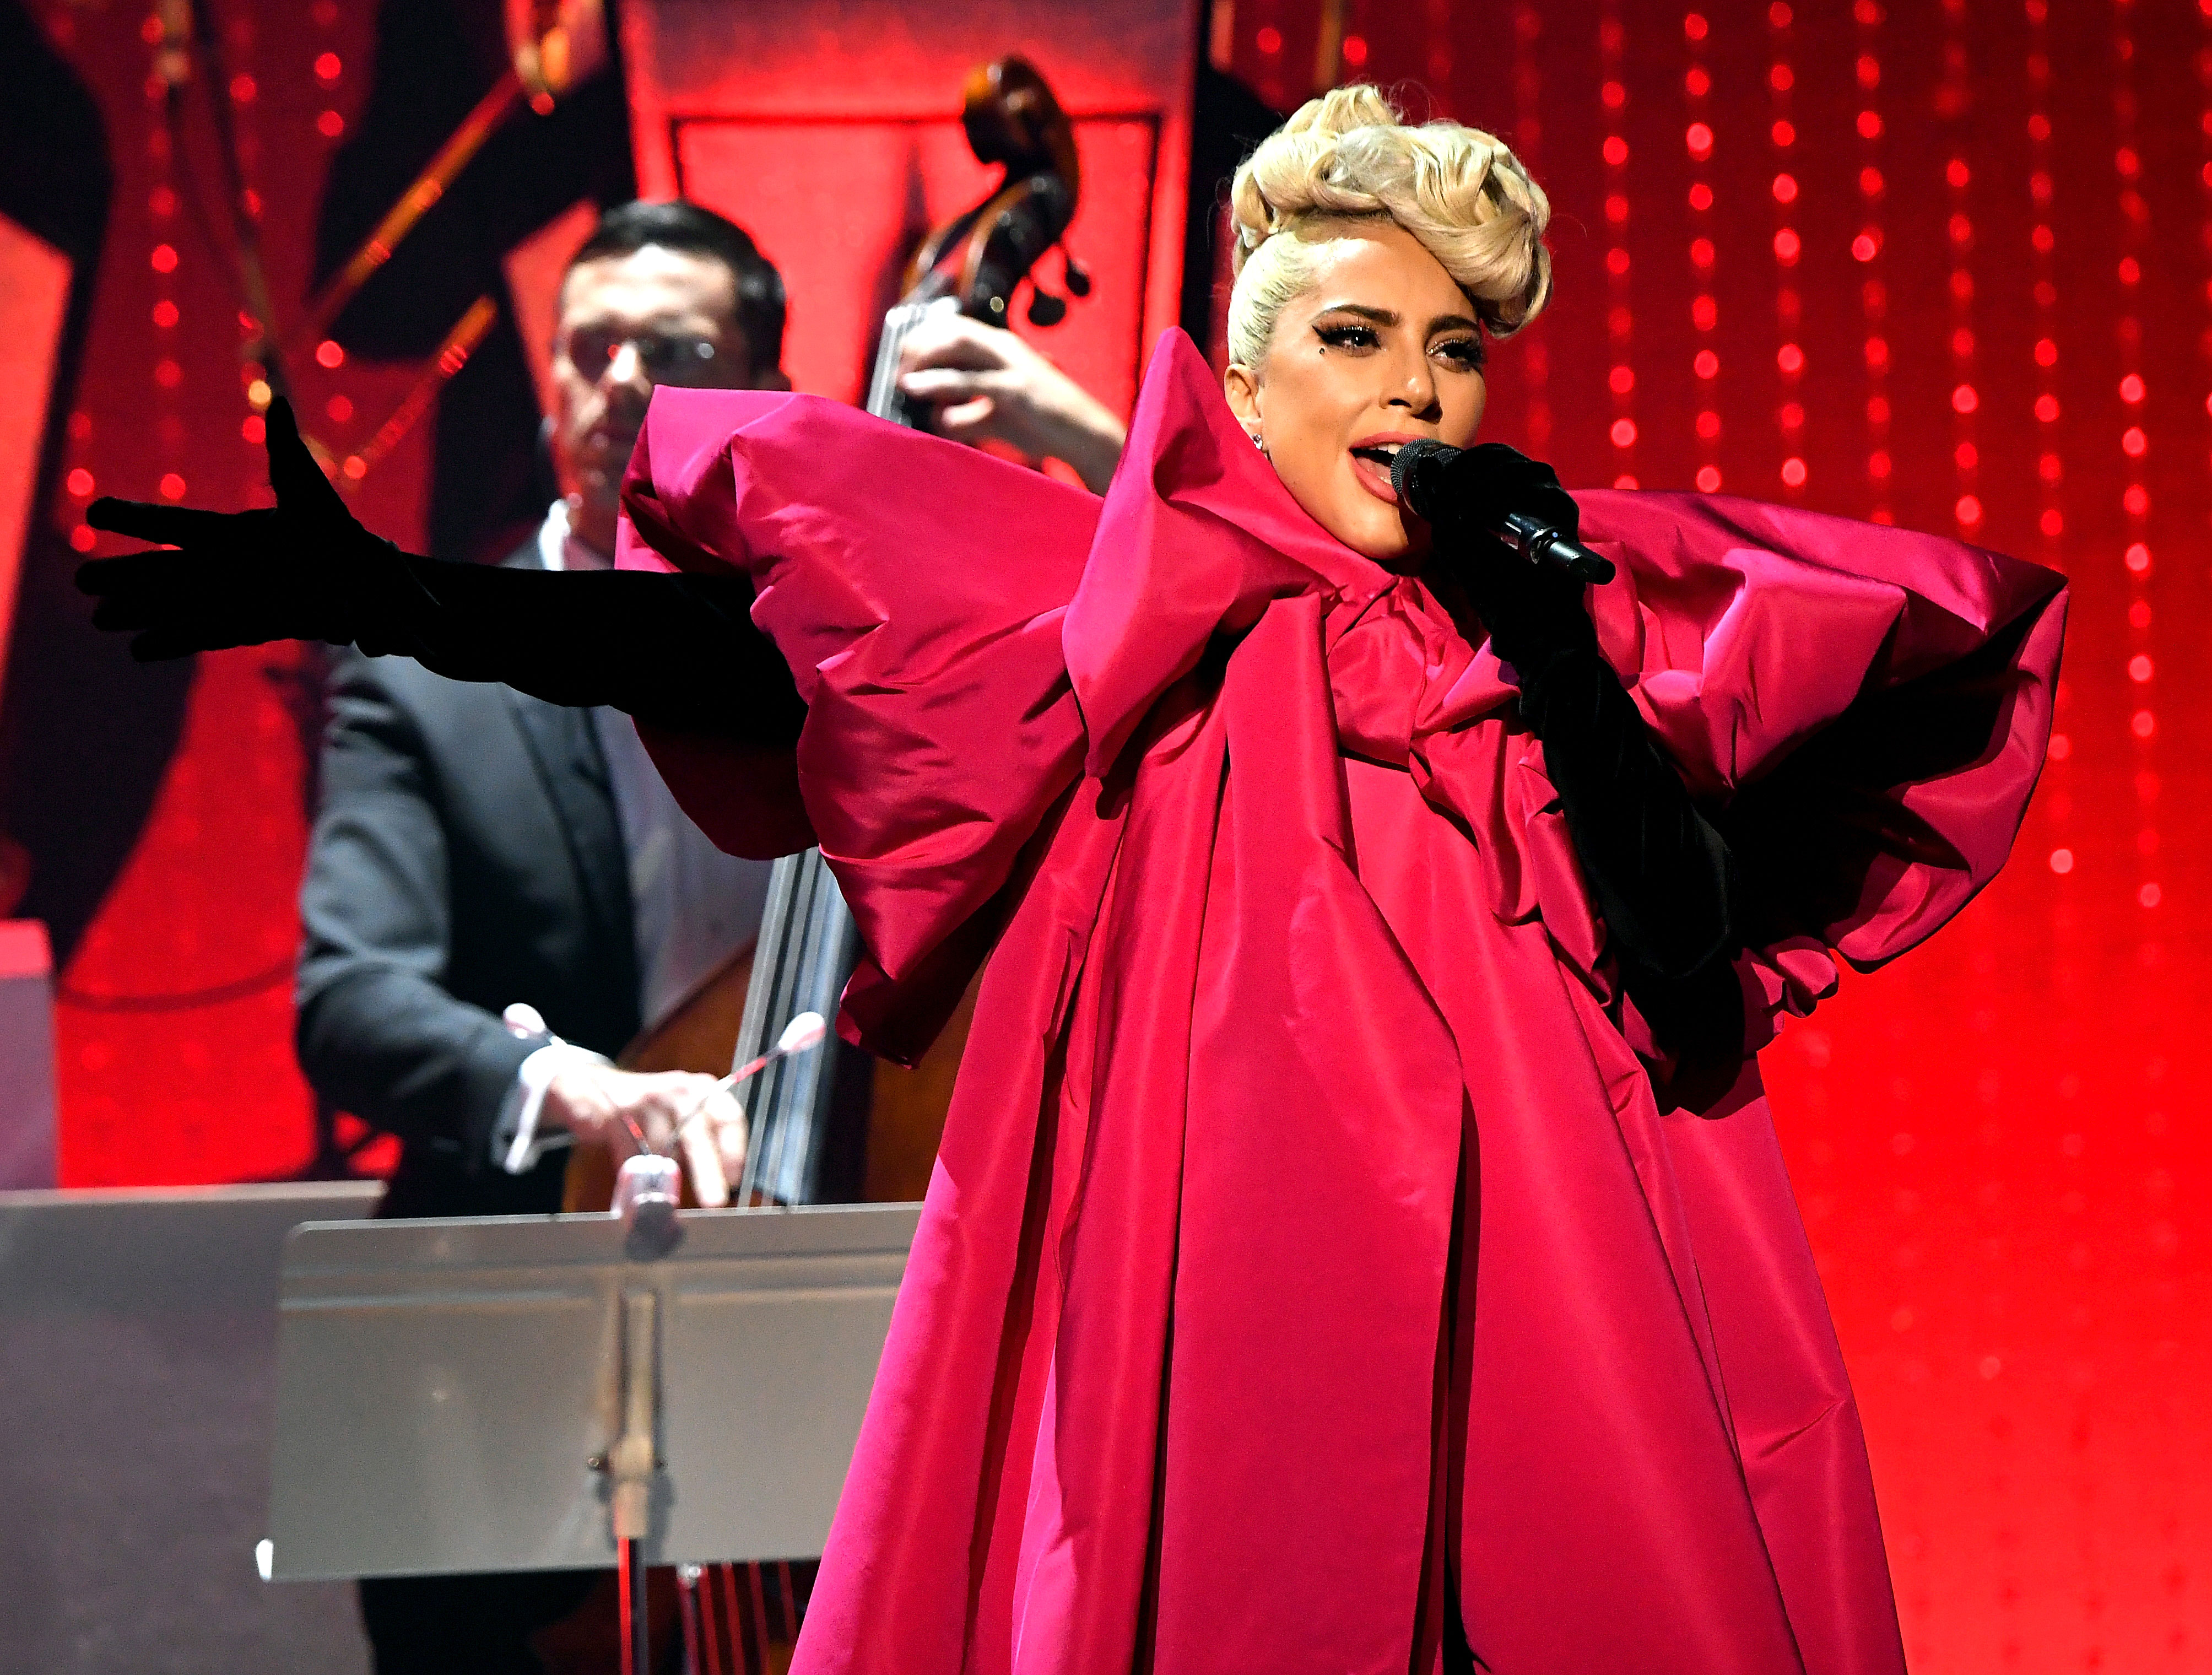 The Biggest Music Stories of 2019 So Far - Lady Gaga performs at Park Theater inside Park MGM on January 19, 2019 in Las Vegas.